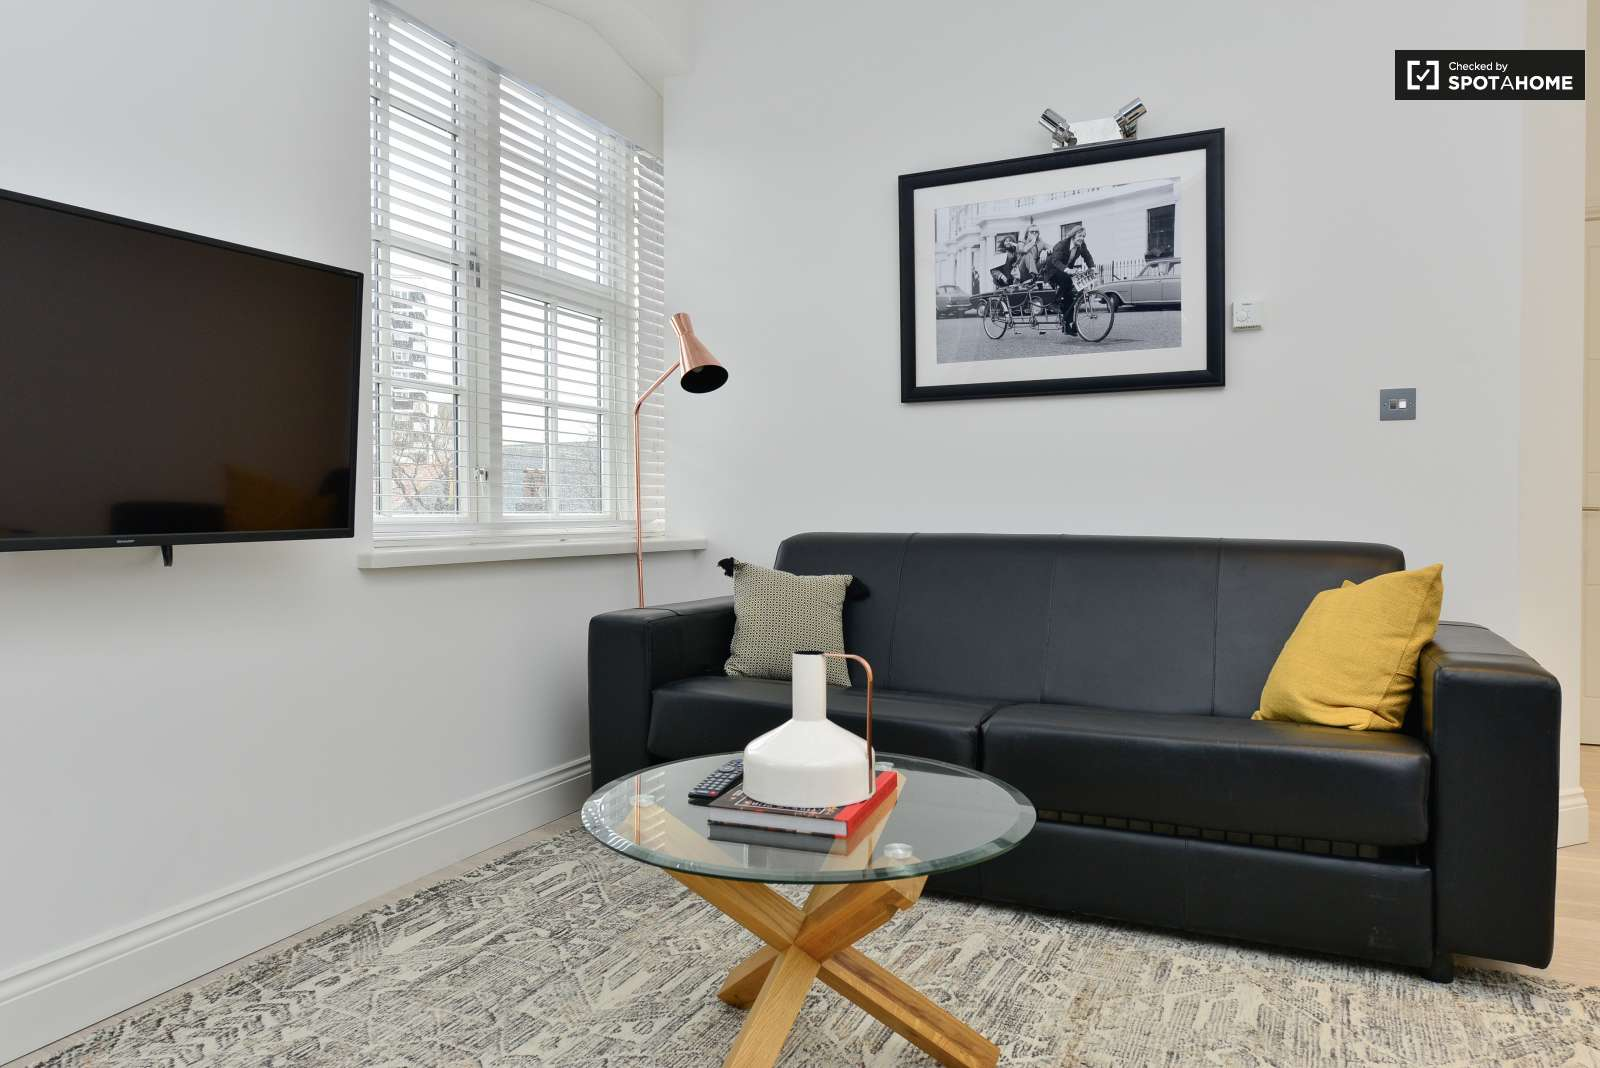 Cool 1-bedroom flat to rent in Camden, London (ref: 212568) | Spotahome